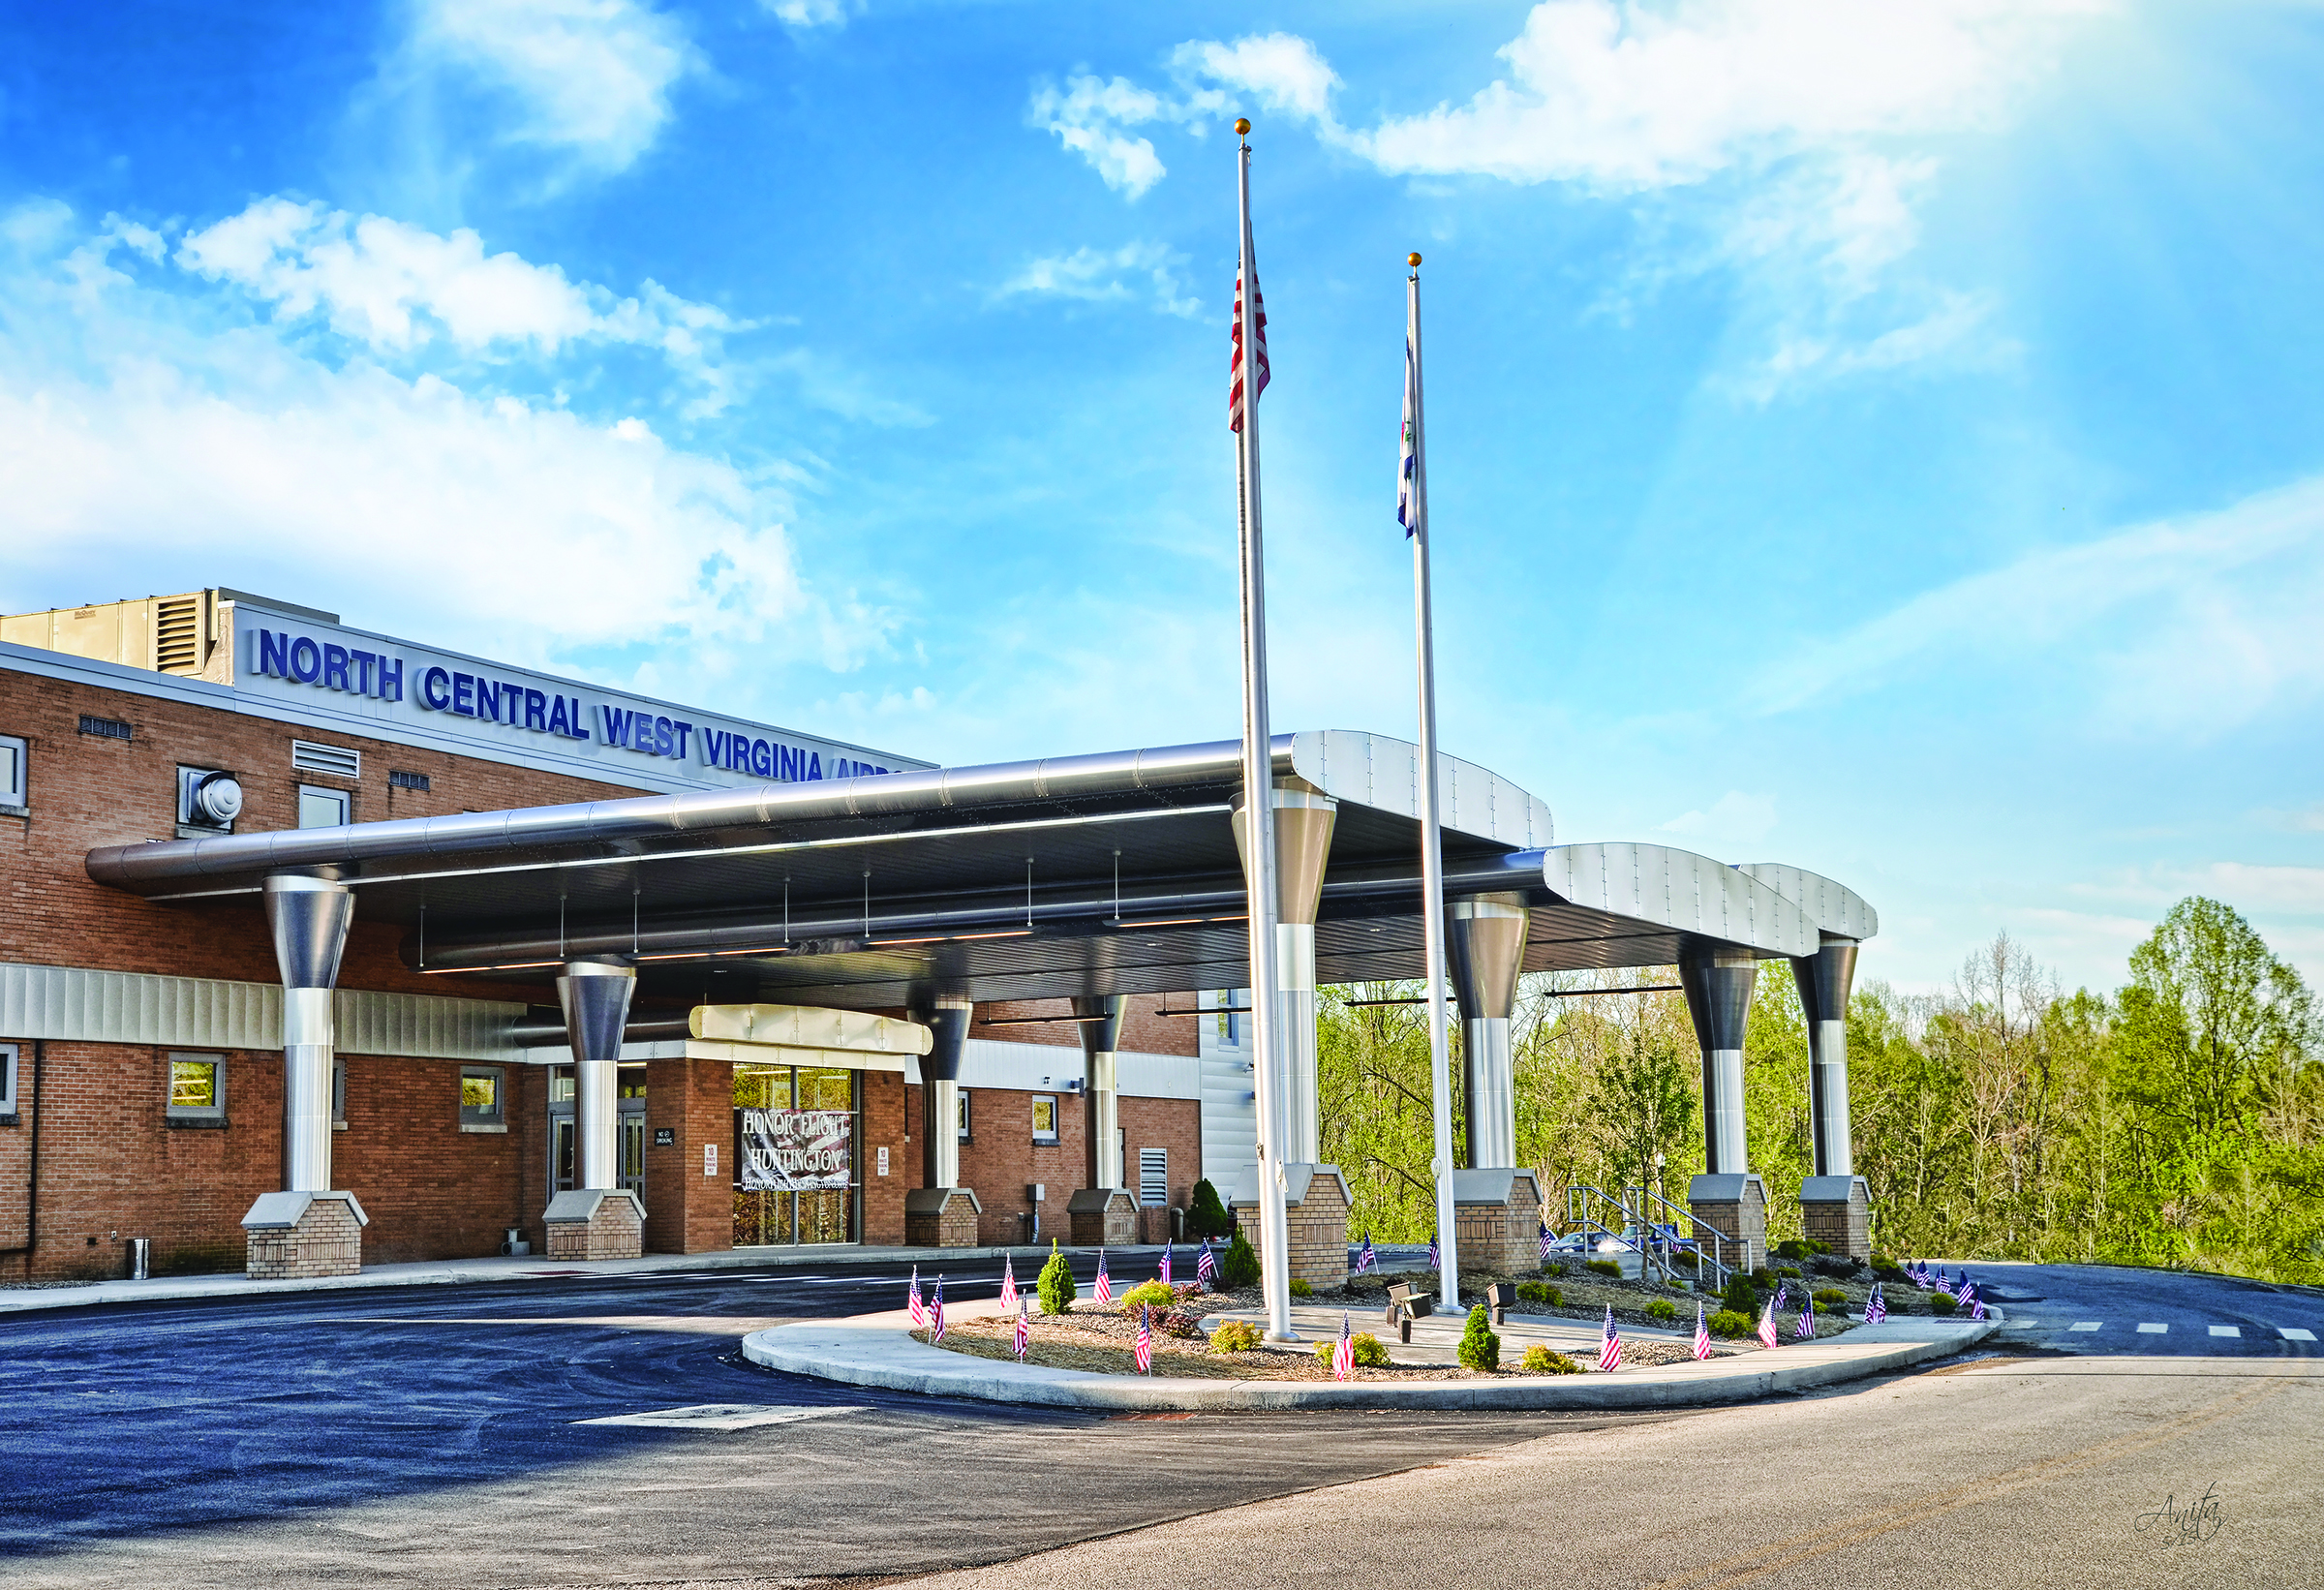 North Central West Virginia Airport Celebrates Exterior Terminal Remodel